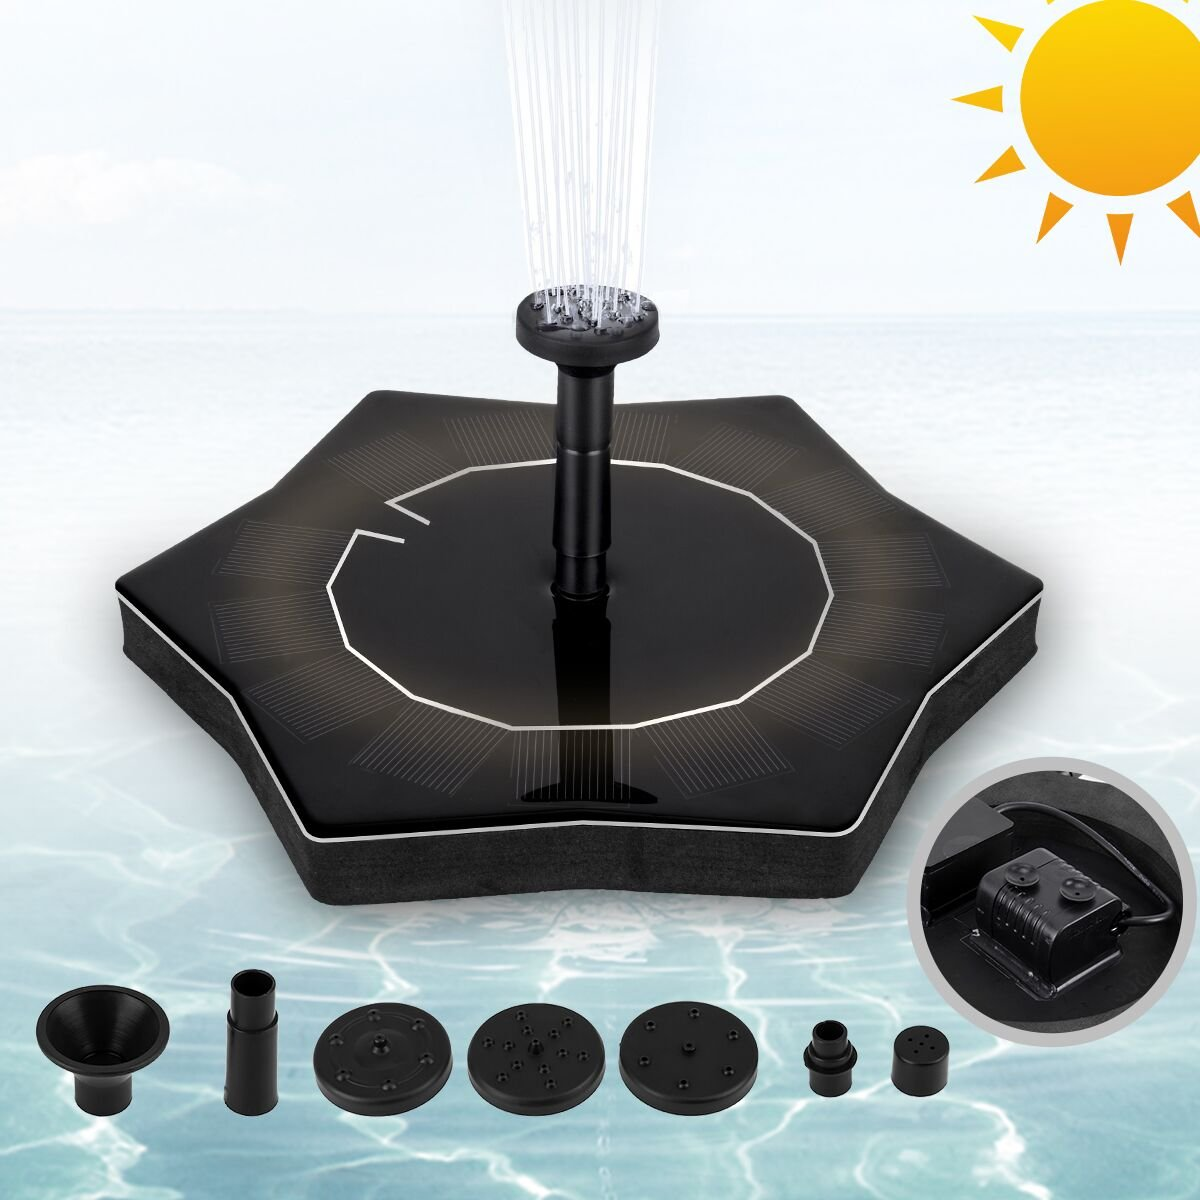 BERT Solar Fountain, Solar Panel Kit Water Pump, Flower-like Fountain Pump, Outdoor Birdbath Watering Submersible Pump for Pond, Pool, Patio, Fish Tank, Aquarium and Garden